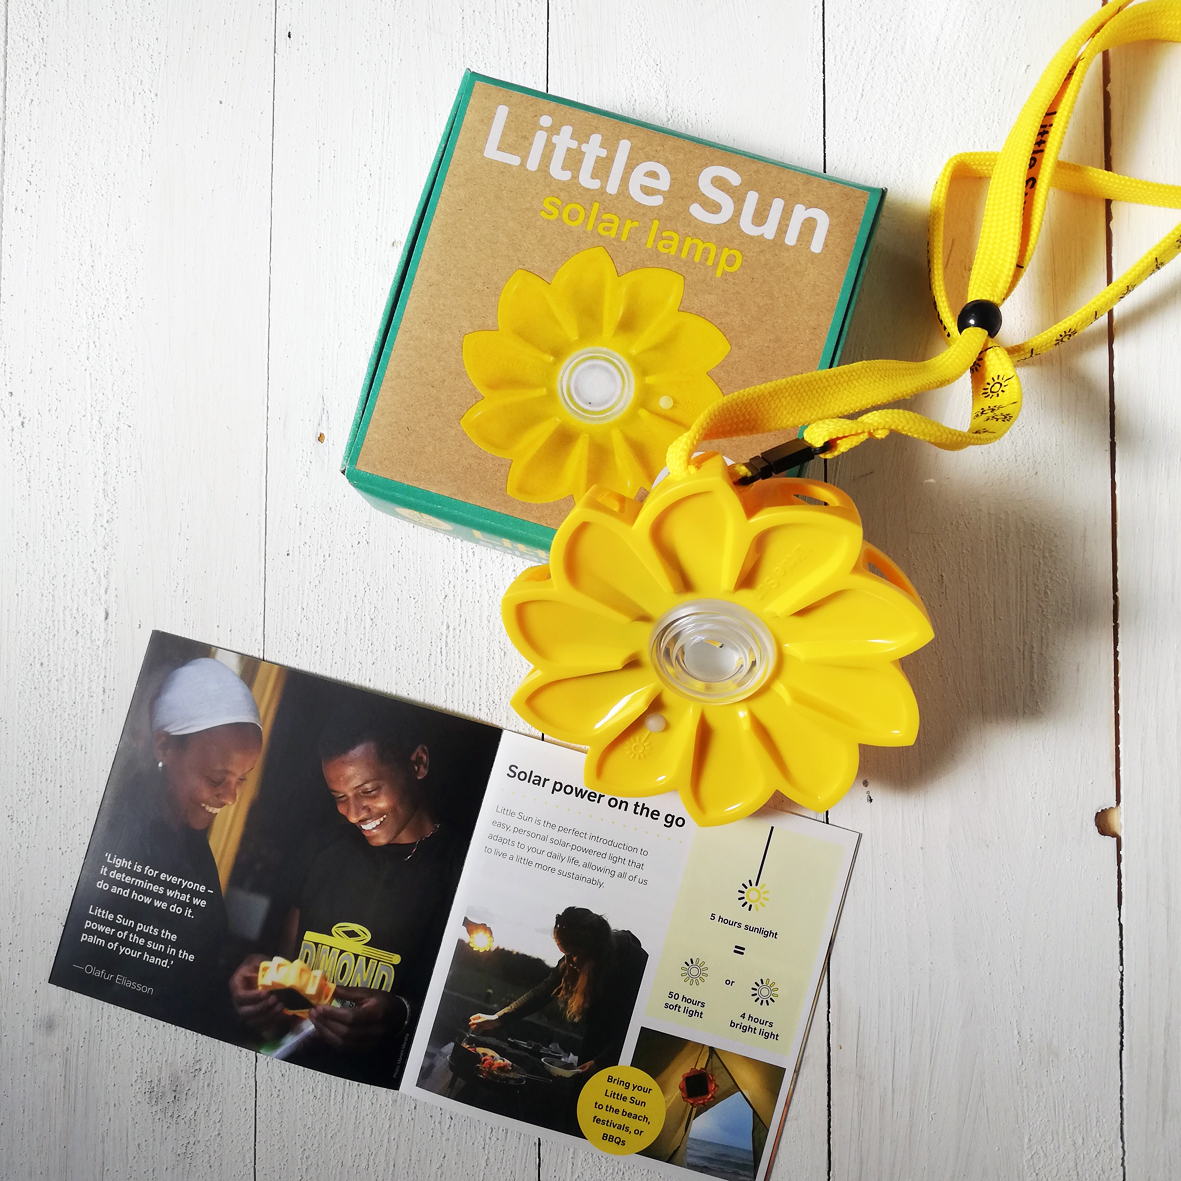 Little Sun LED Solarlampe € 22,50